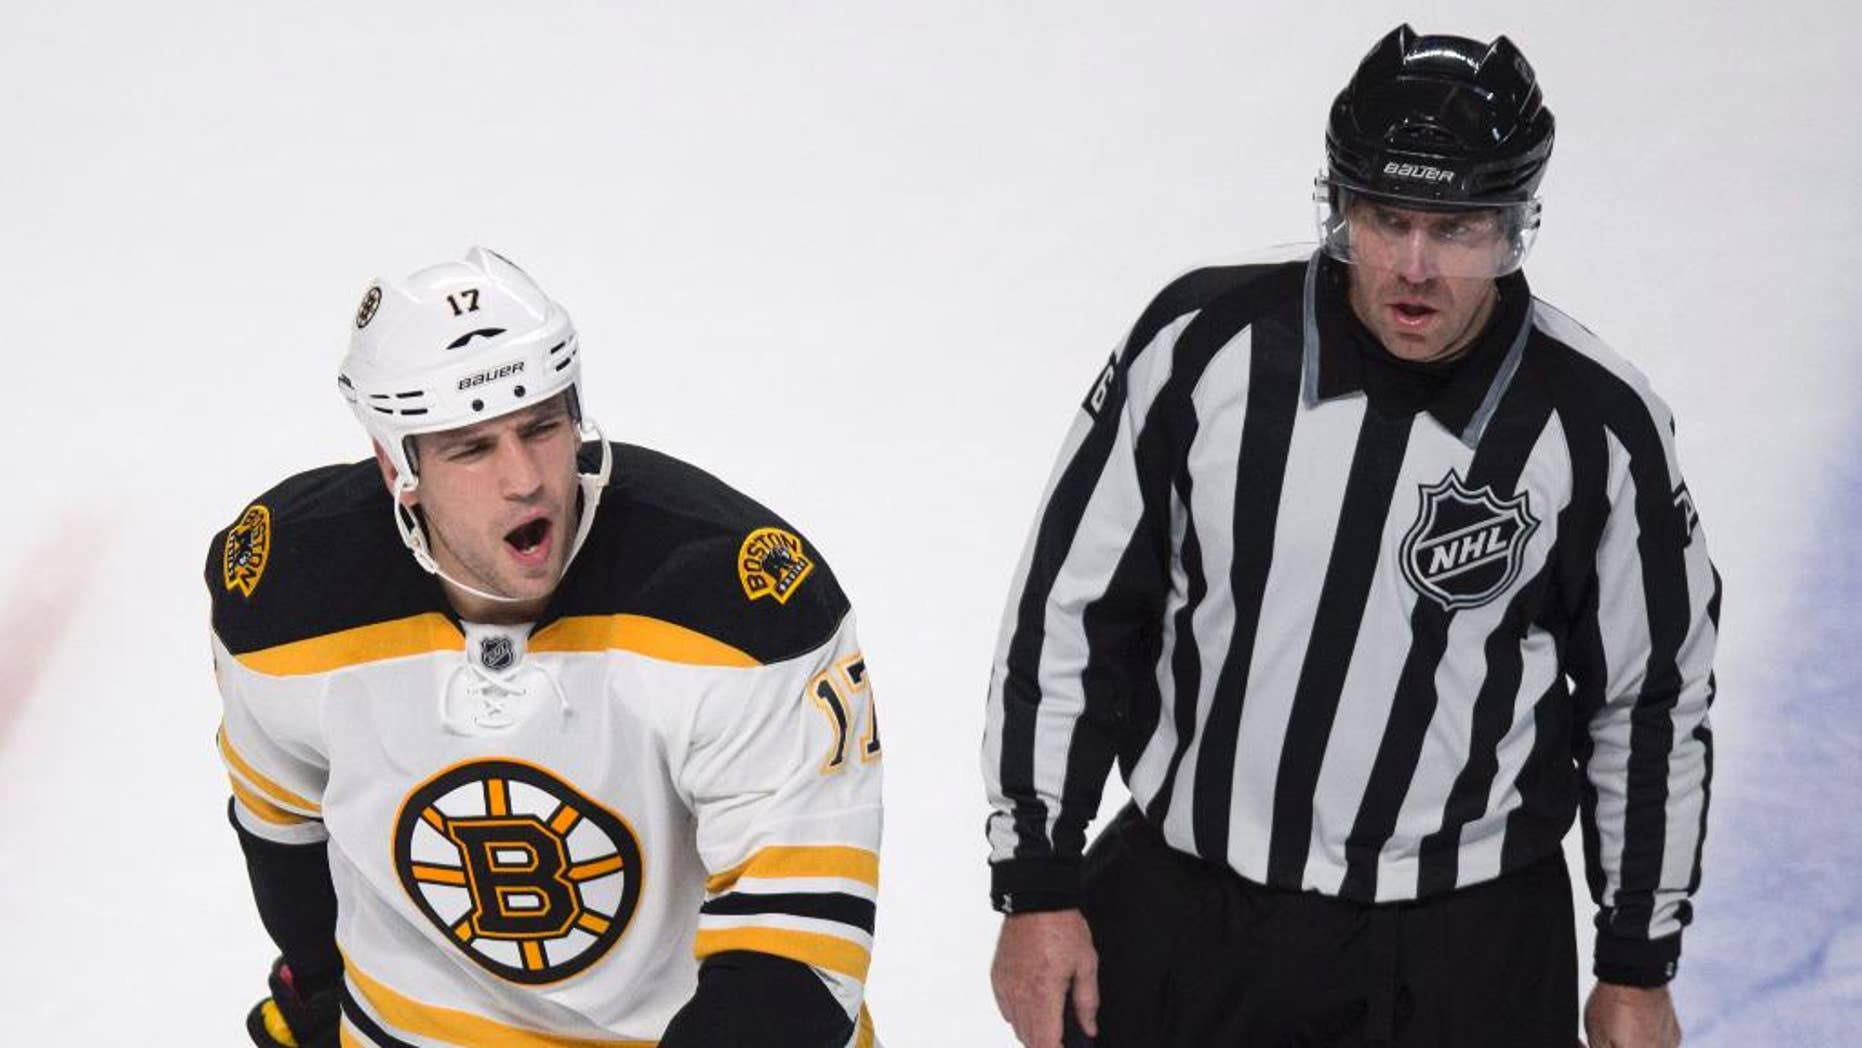 Boston Bruins' Milan Lucic, left, reacts as he is escorted off the ice by linesman Michel Cormier after receiving a penalty near the end of an NHL hockey game against the Montreal Canadiens, Thursday, Oct. 16, 2014, in Montreal. The Canadiens won 6-4. (AP Photo/The Canadian Press, Paul Chiasson)